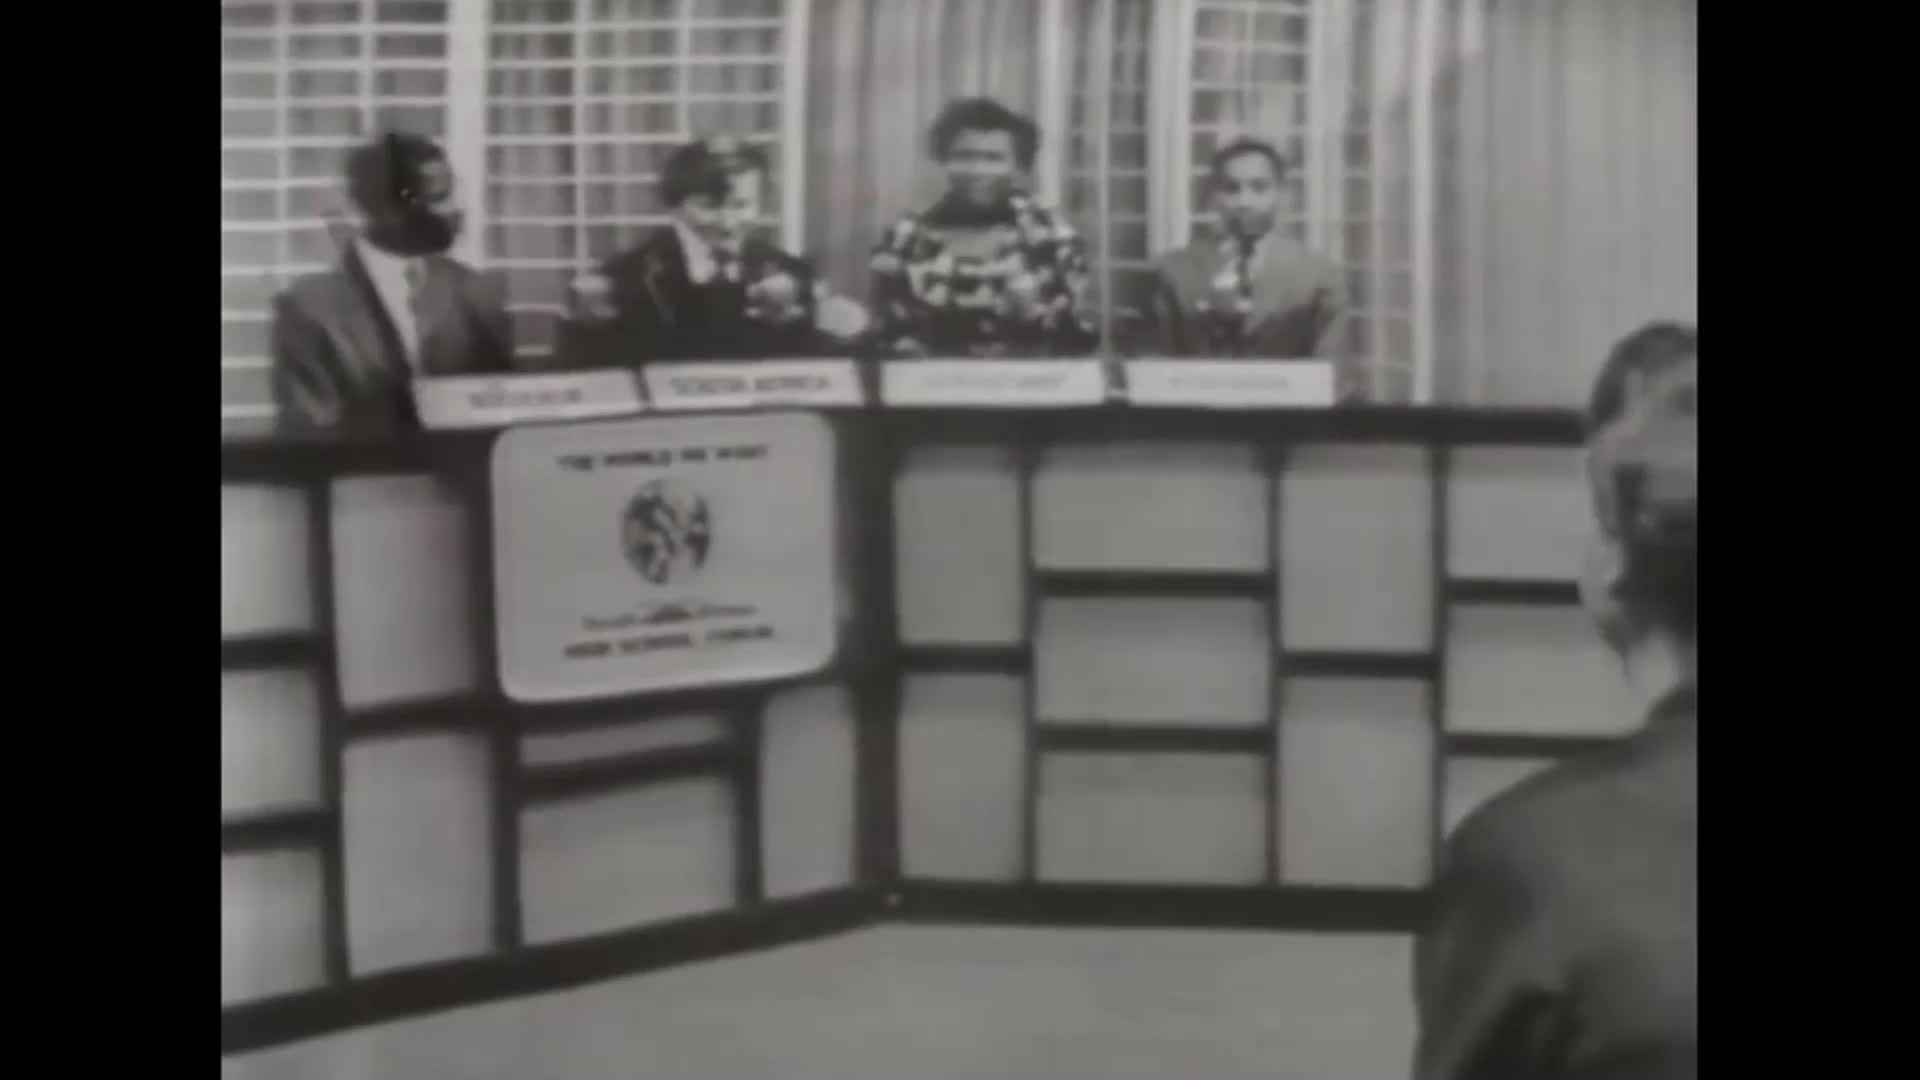 1956/1957 Debate with lessons for Negroes_FE(2)